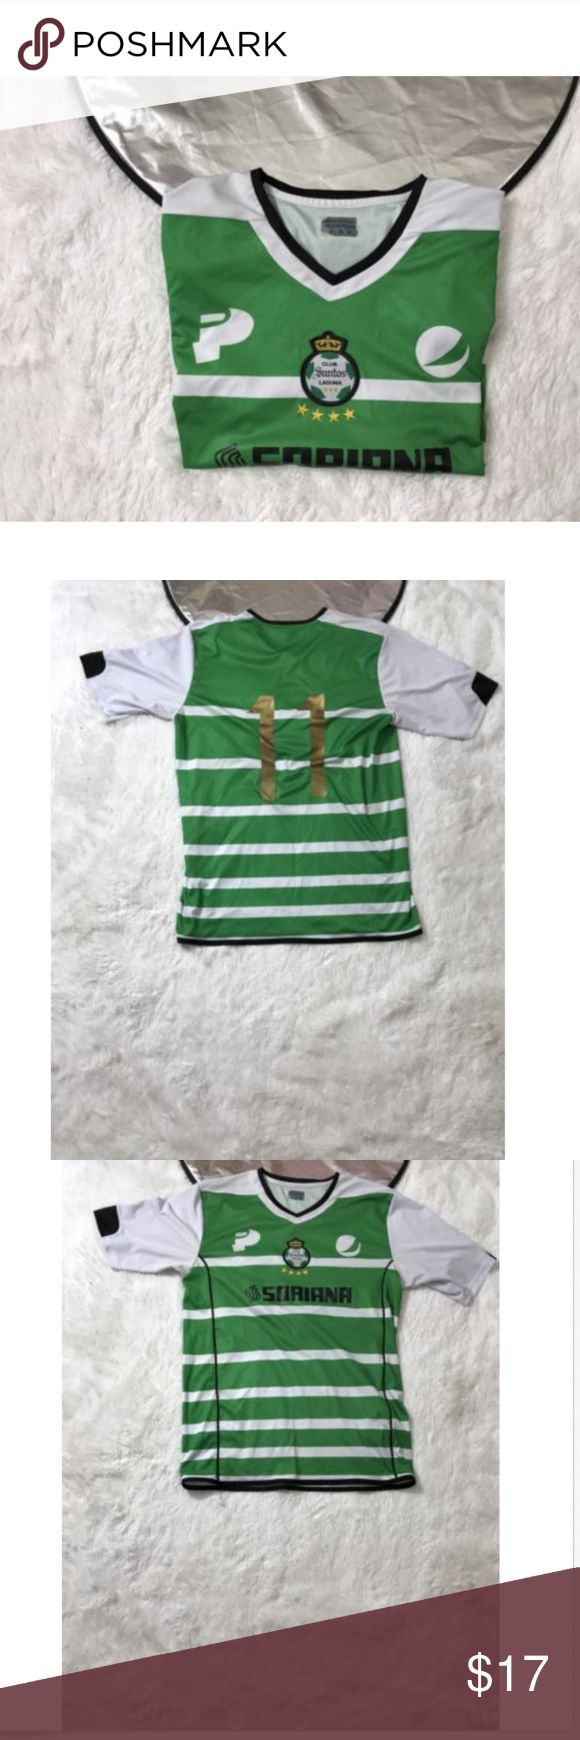 Club Santos Laguna REPLICA Jersey Soccer Jersey Club Santos Laguna REPLICA Jersey Soccer Jersey #11 Mens Size Medium   Please see picture for full details  ships fast and safe! santos Shirts Tees - Short Sleeve